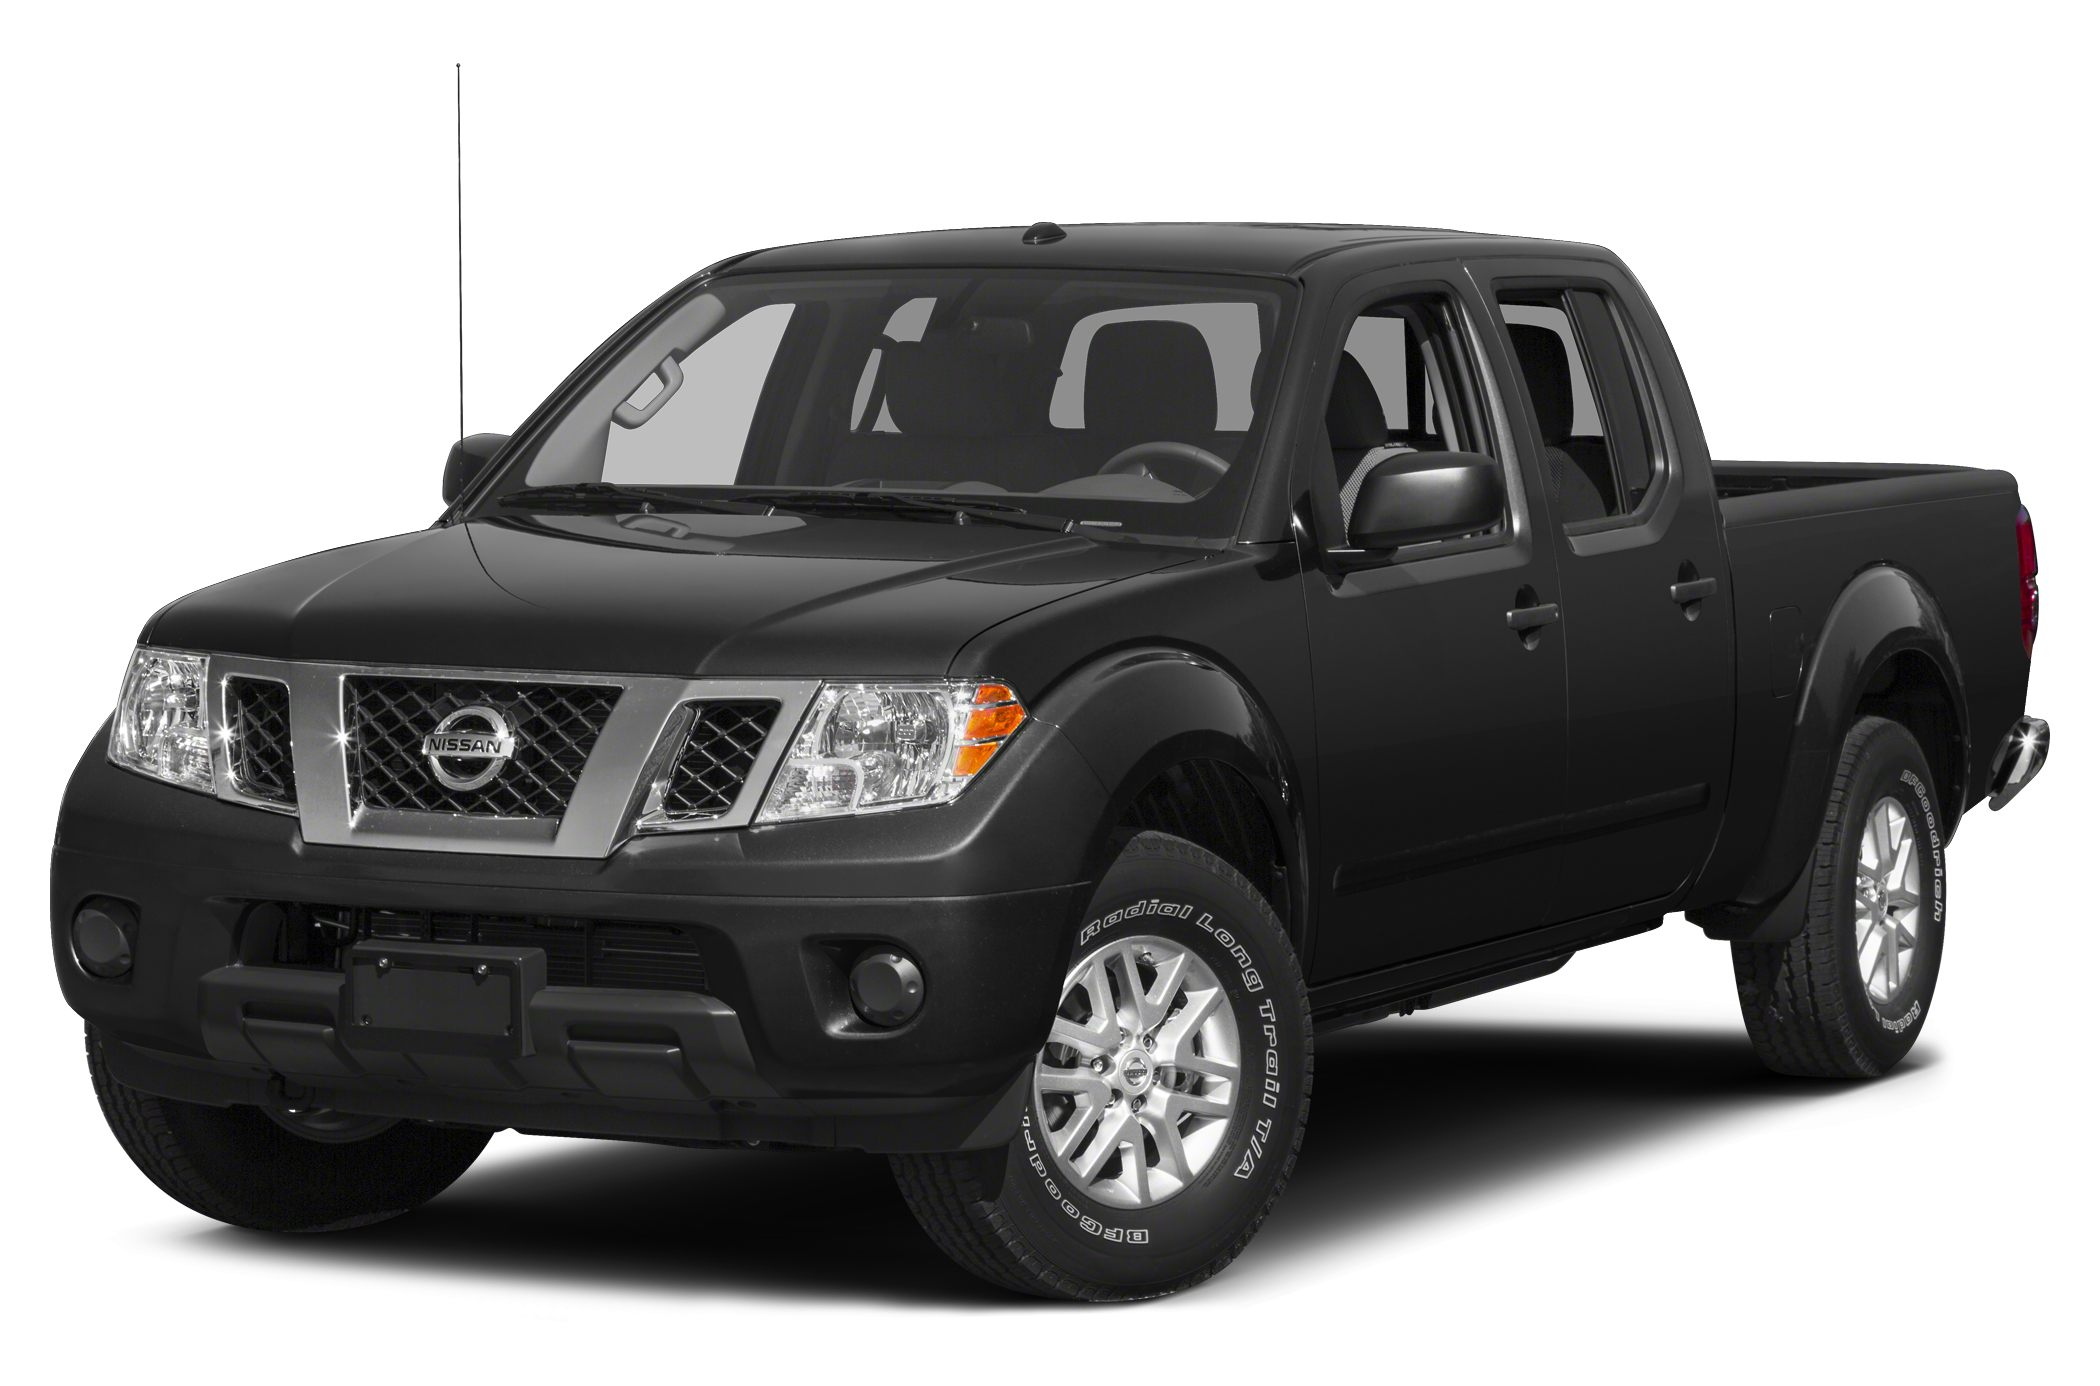 2015 Nissan Frontier S Extended Cab Pickup for sale in Germantown for $19,784 with 6 miles